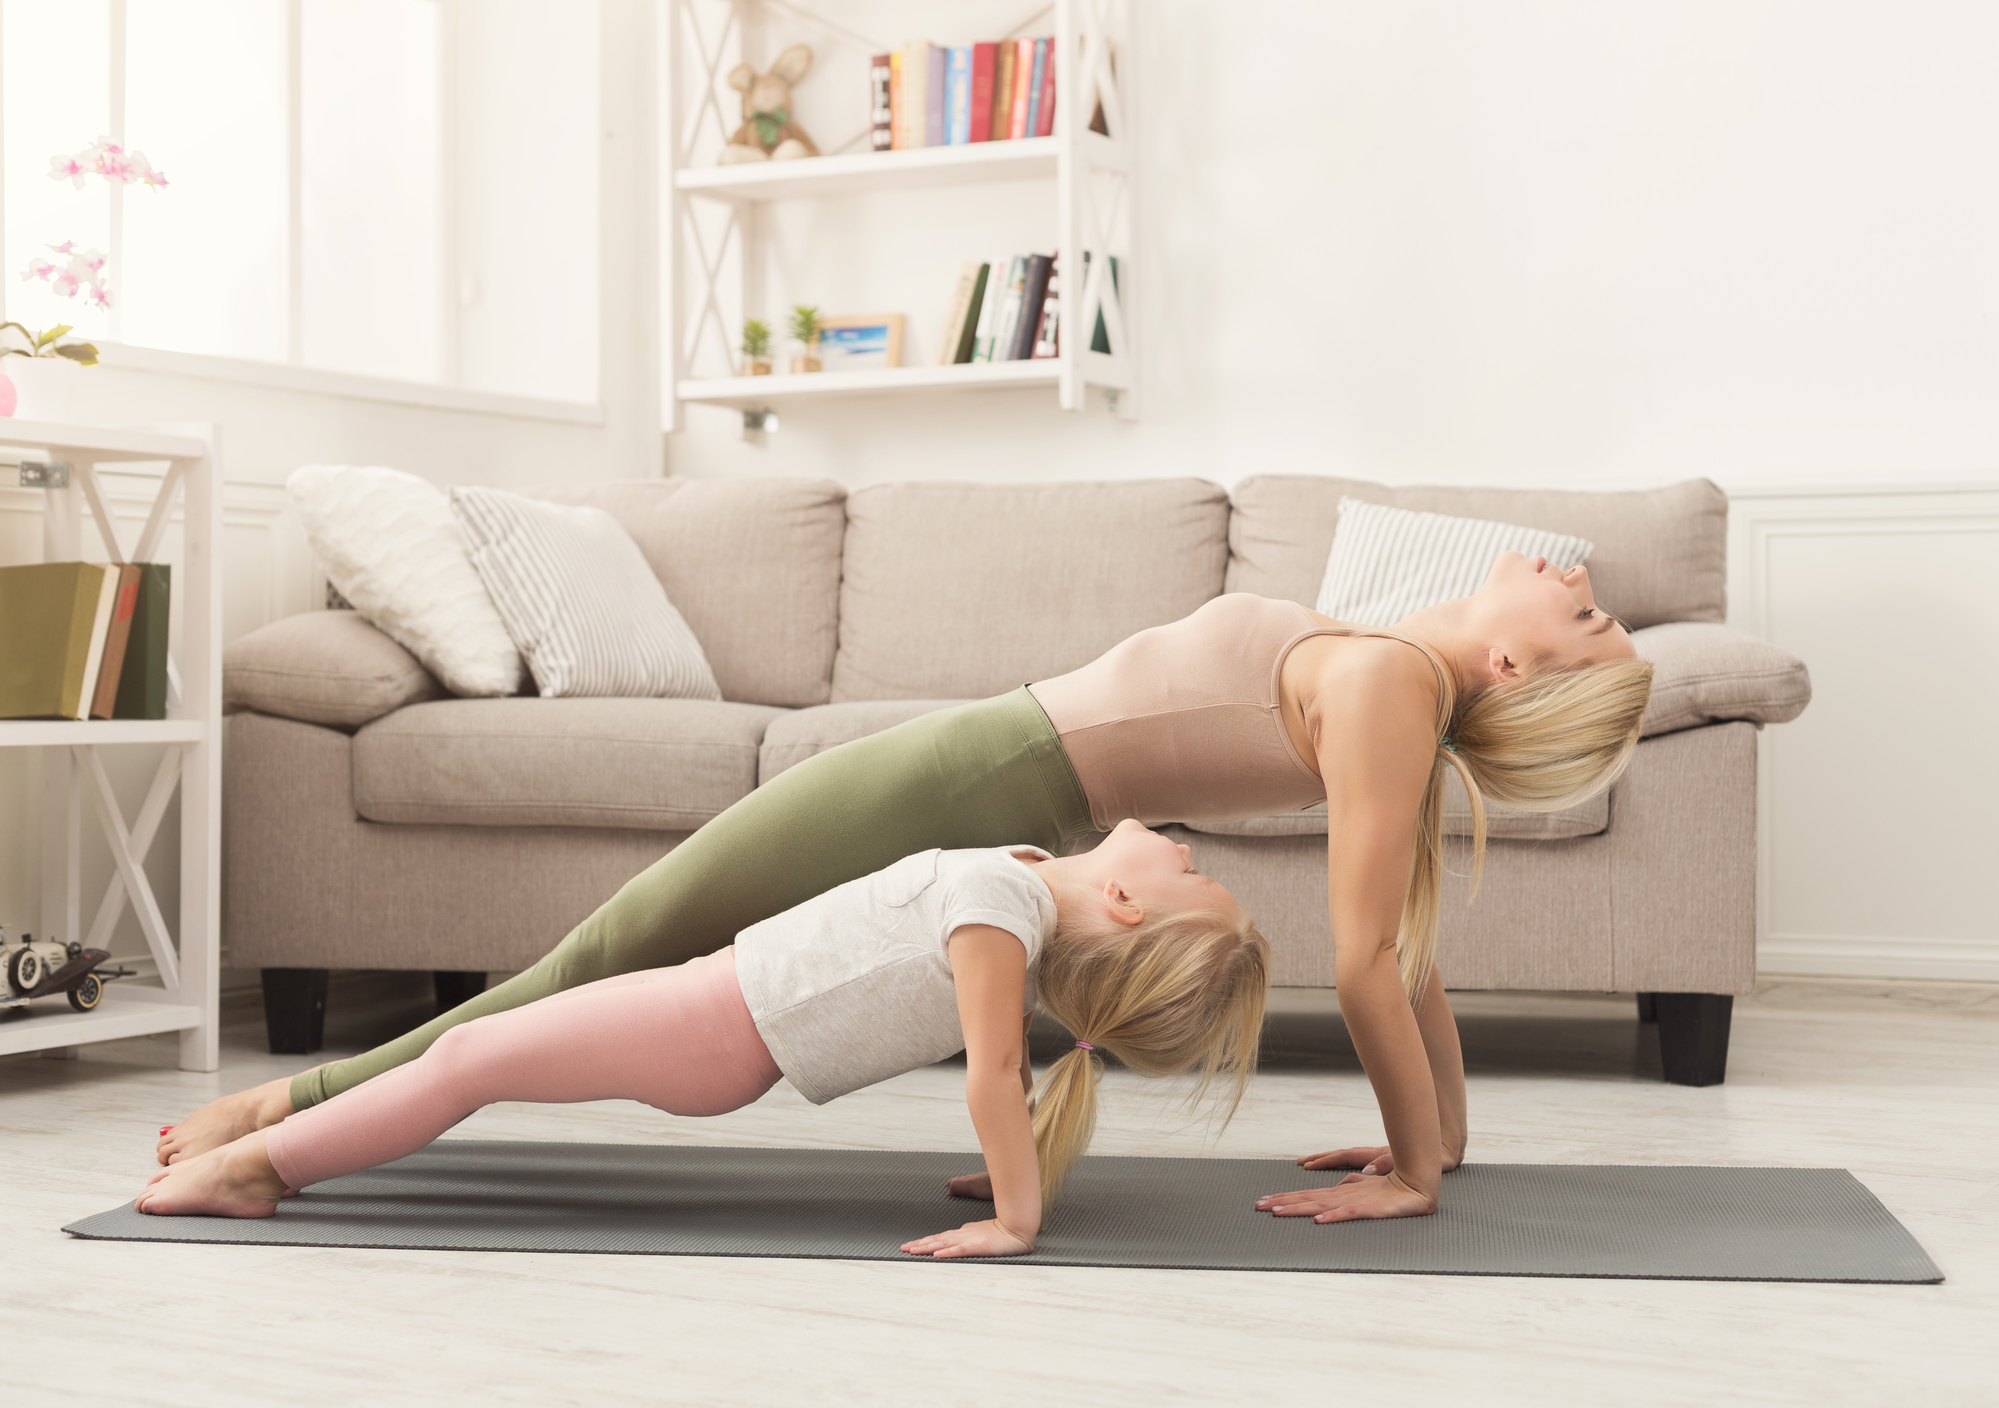 can you lose weight with doing yoga at home